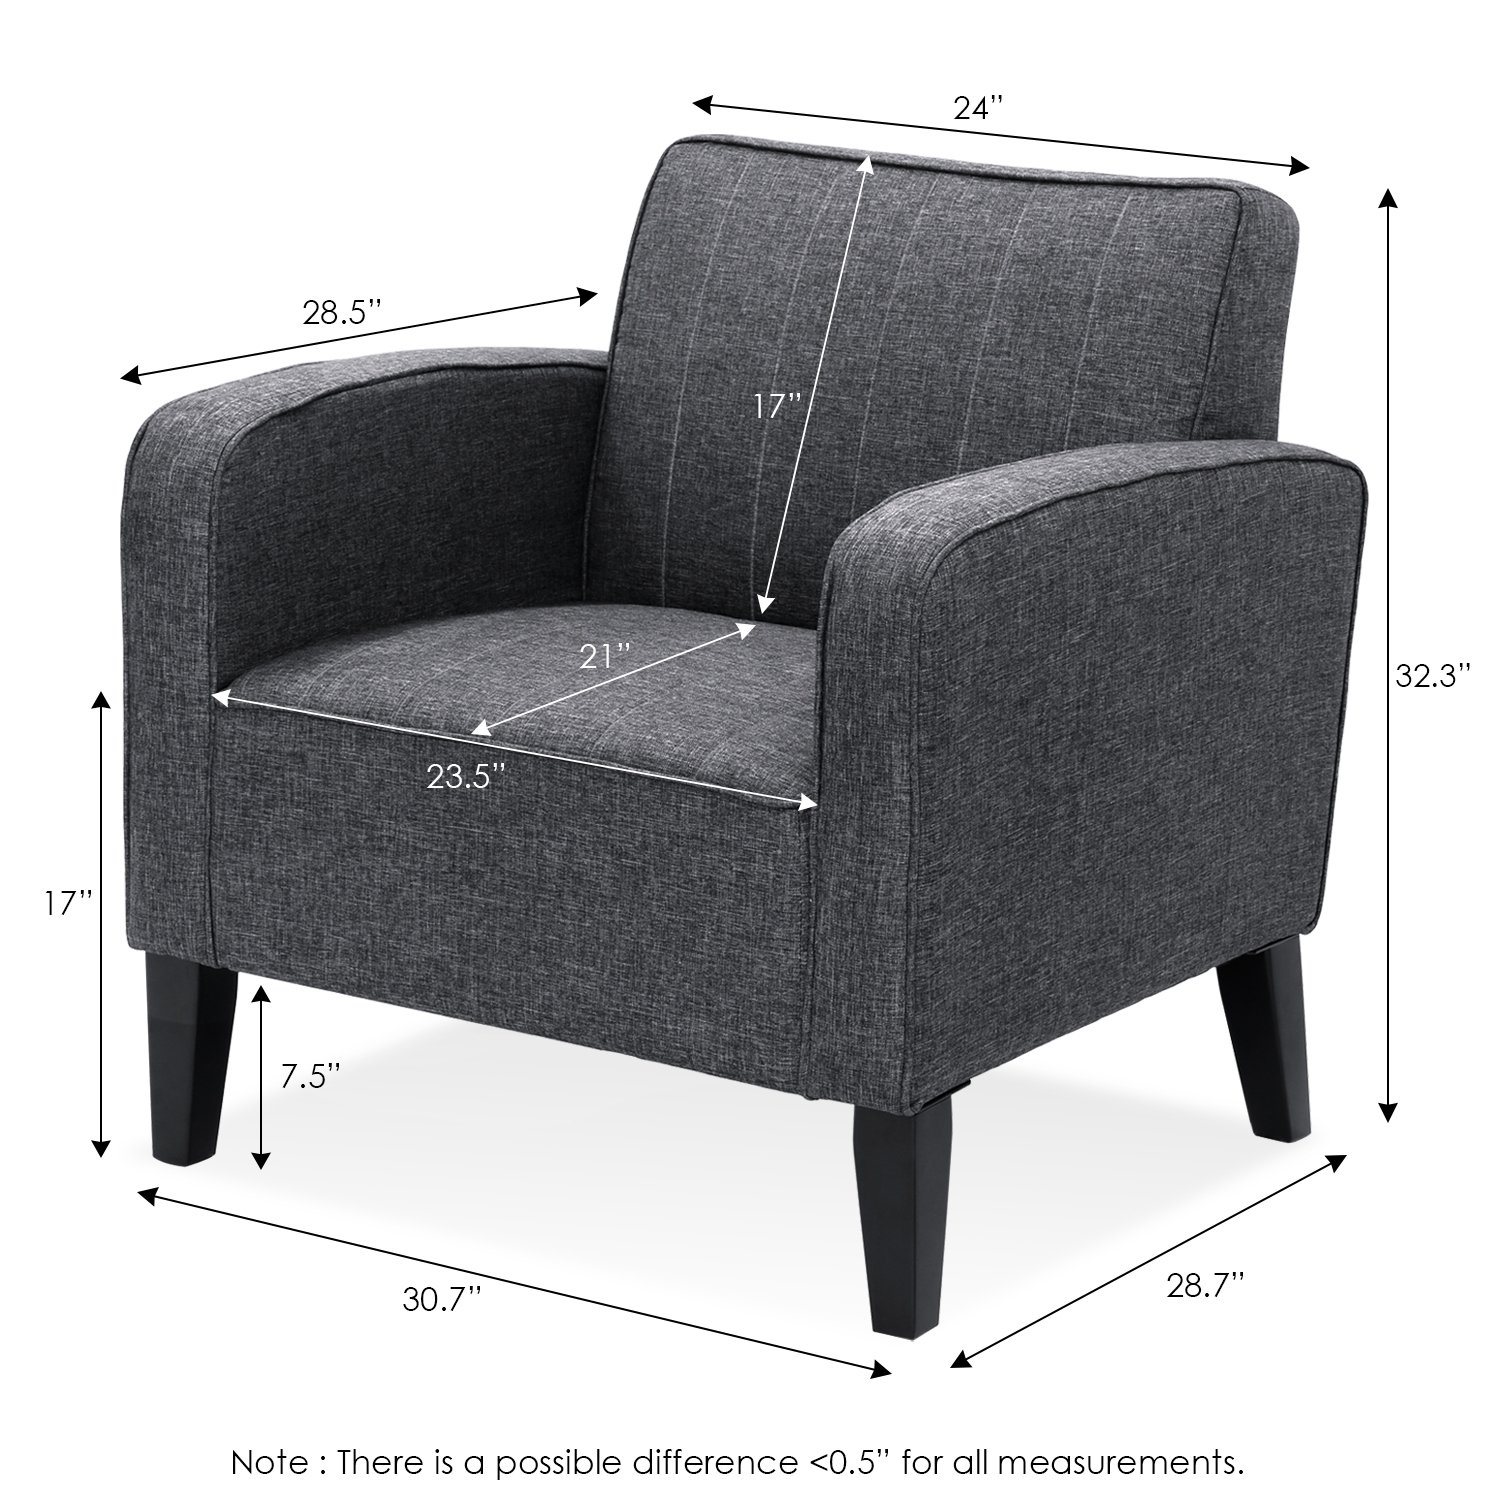 Furinno Euro Classic Upholstered Arm Accent Chair, Dark Grey SF103N5DGY